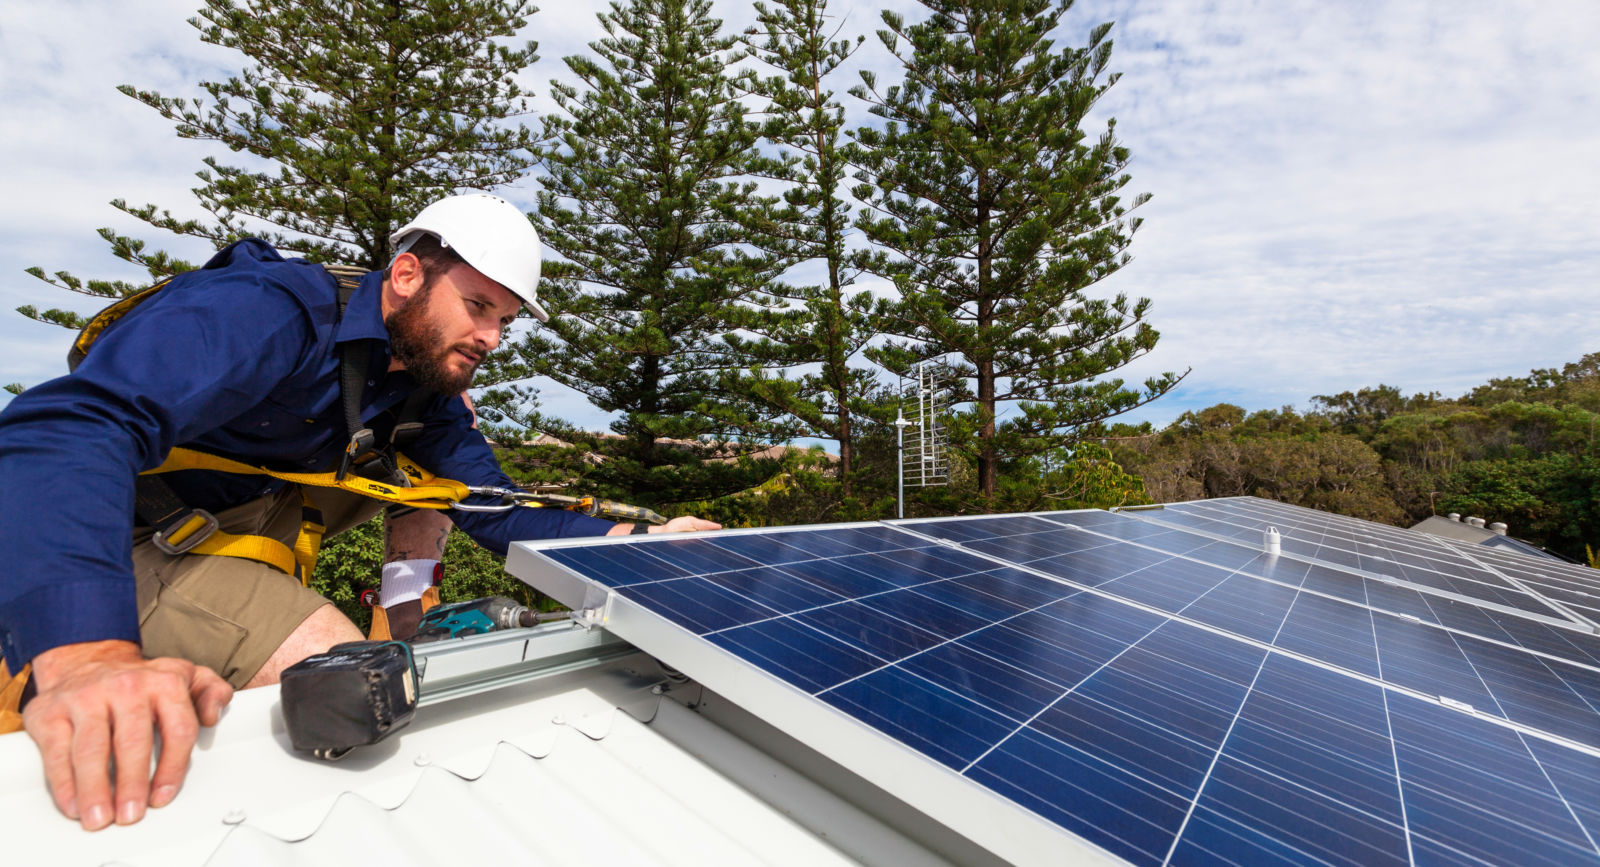 Solar panel technician checking solar panels